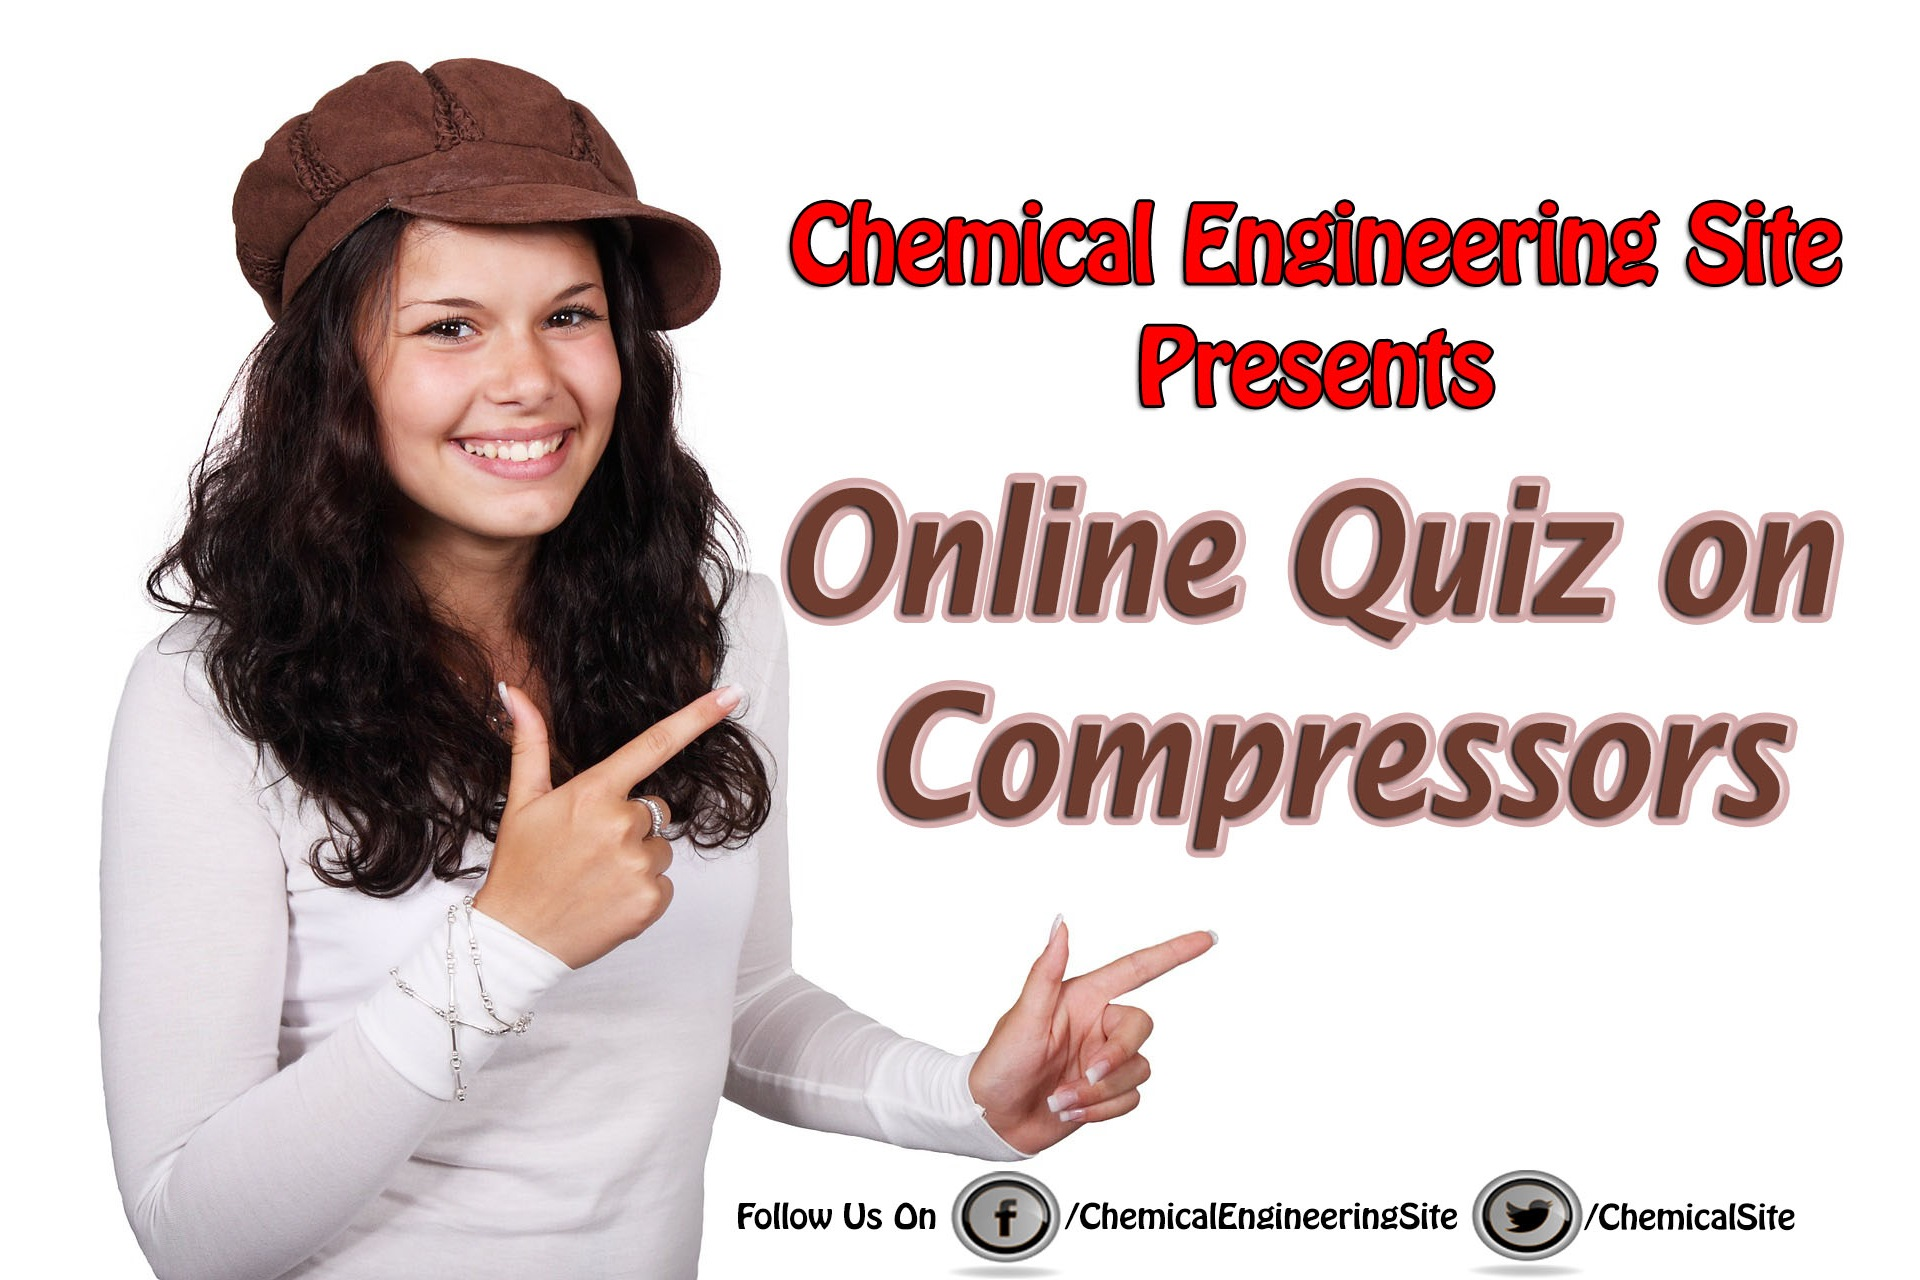 00:14:56 Test Your knowledge on Compressors – Online Quiz - Chemical